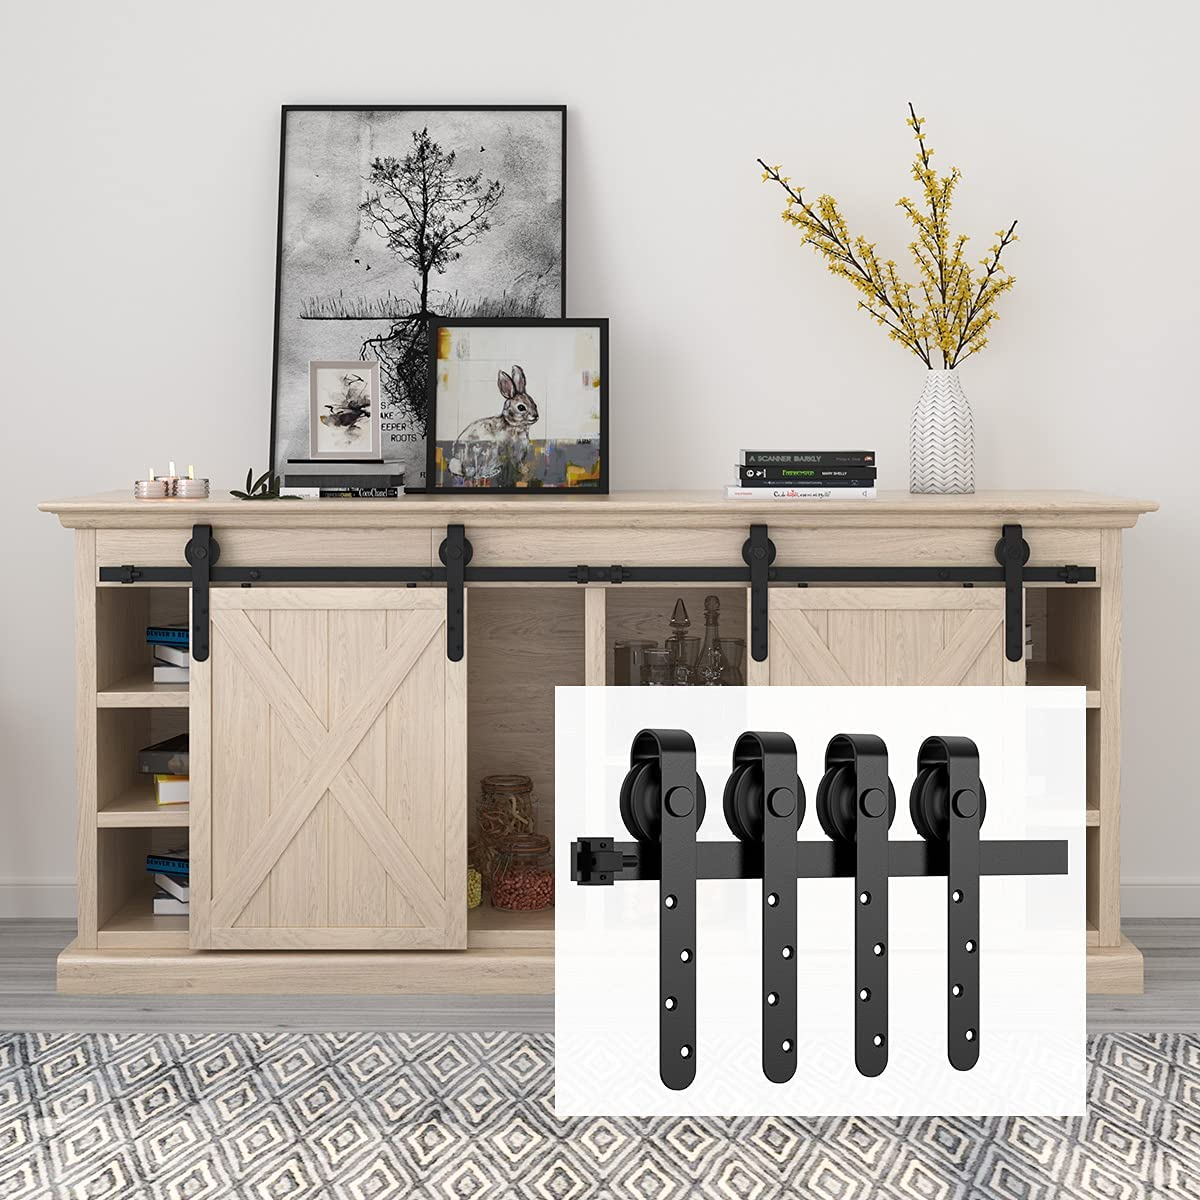 HomLux 6ft Double Cabinet Door Mini Barn Door Hardware Kits for Cabinet Doors - Smoothly and Quietly - Simple and Easy to Install J Shape Hangers